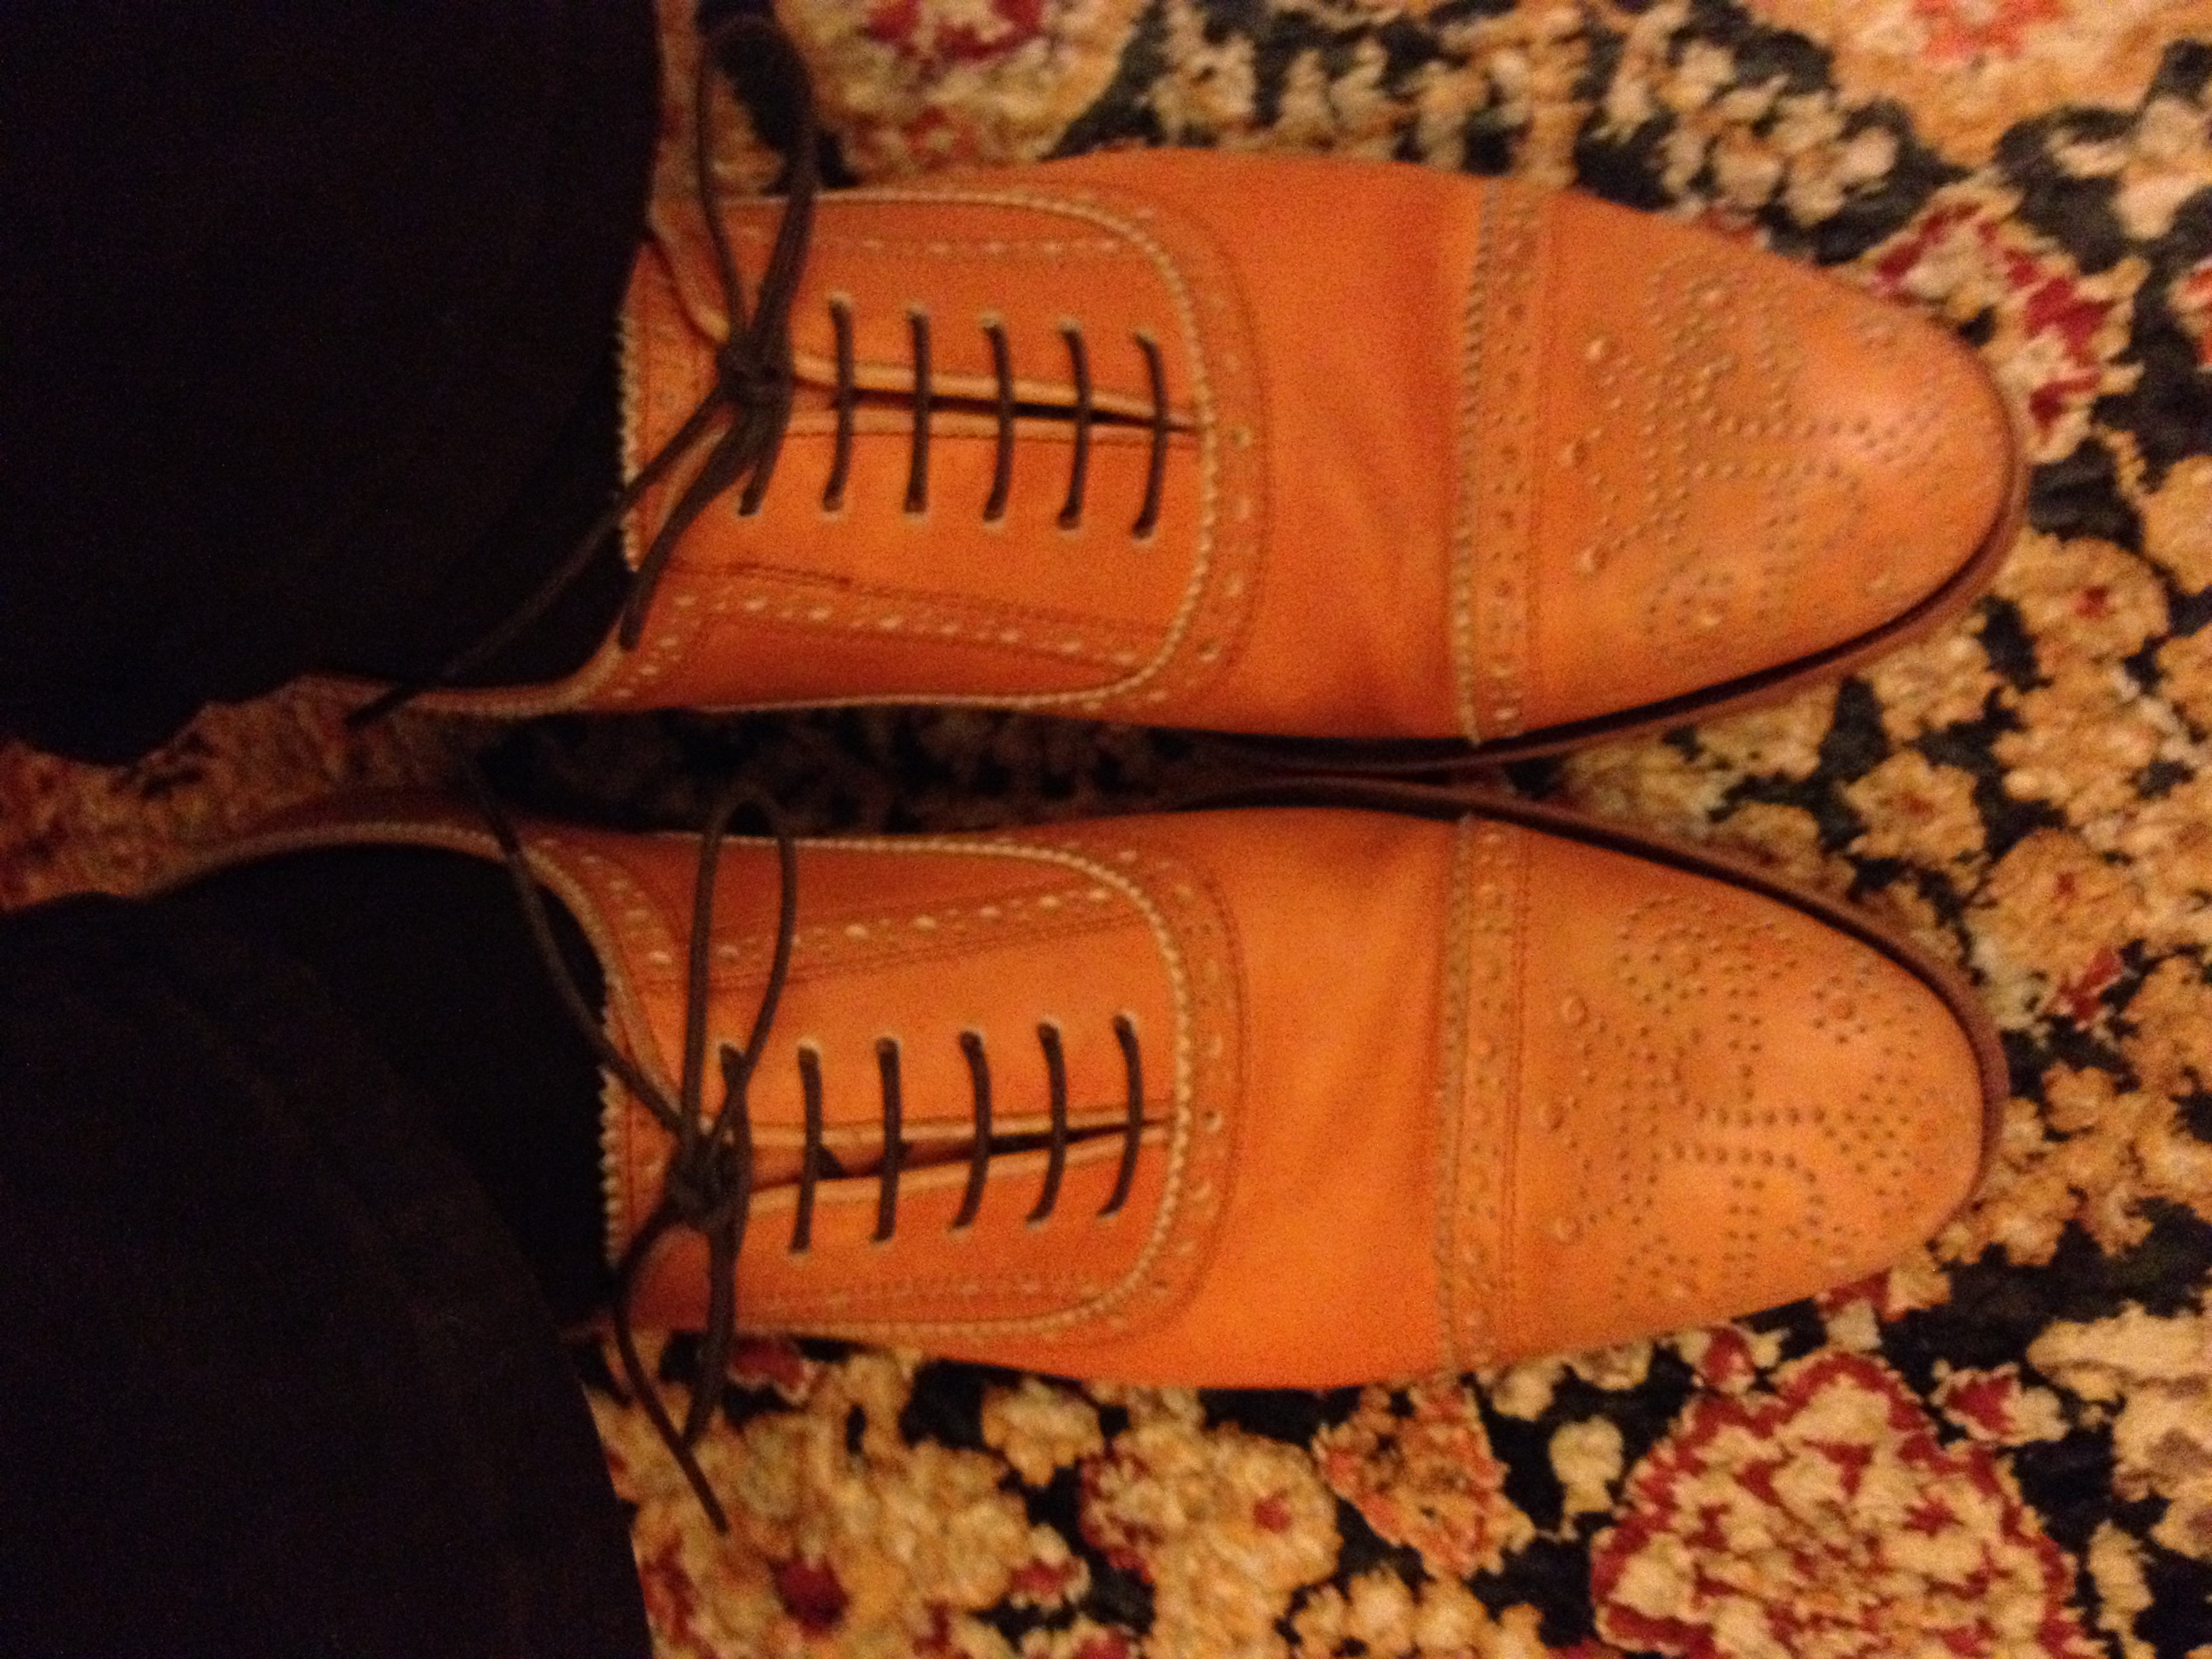 #uxshoes Somebody got her first pair of Fleuvogs, in a snazzy orange